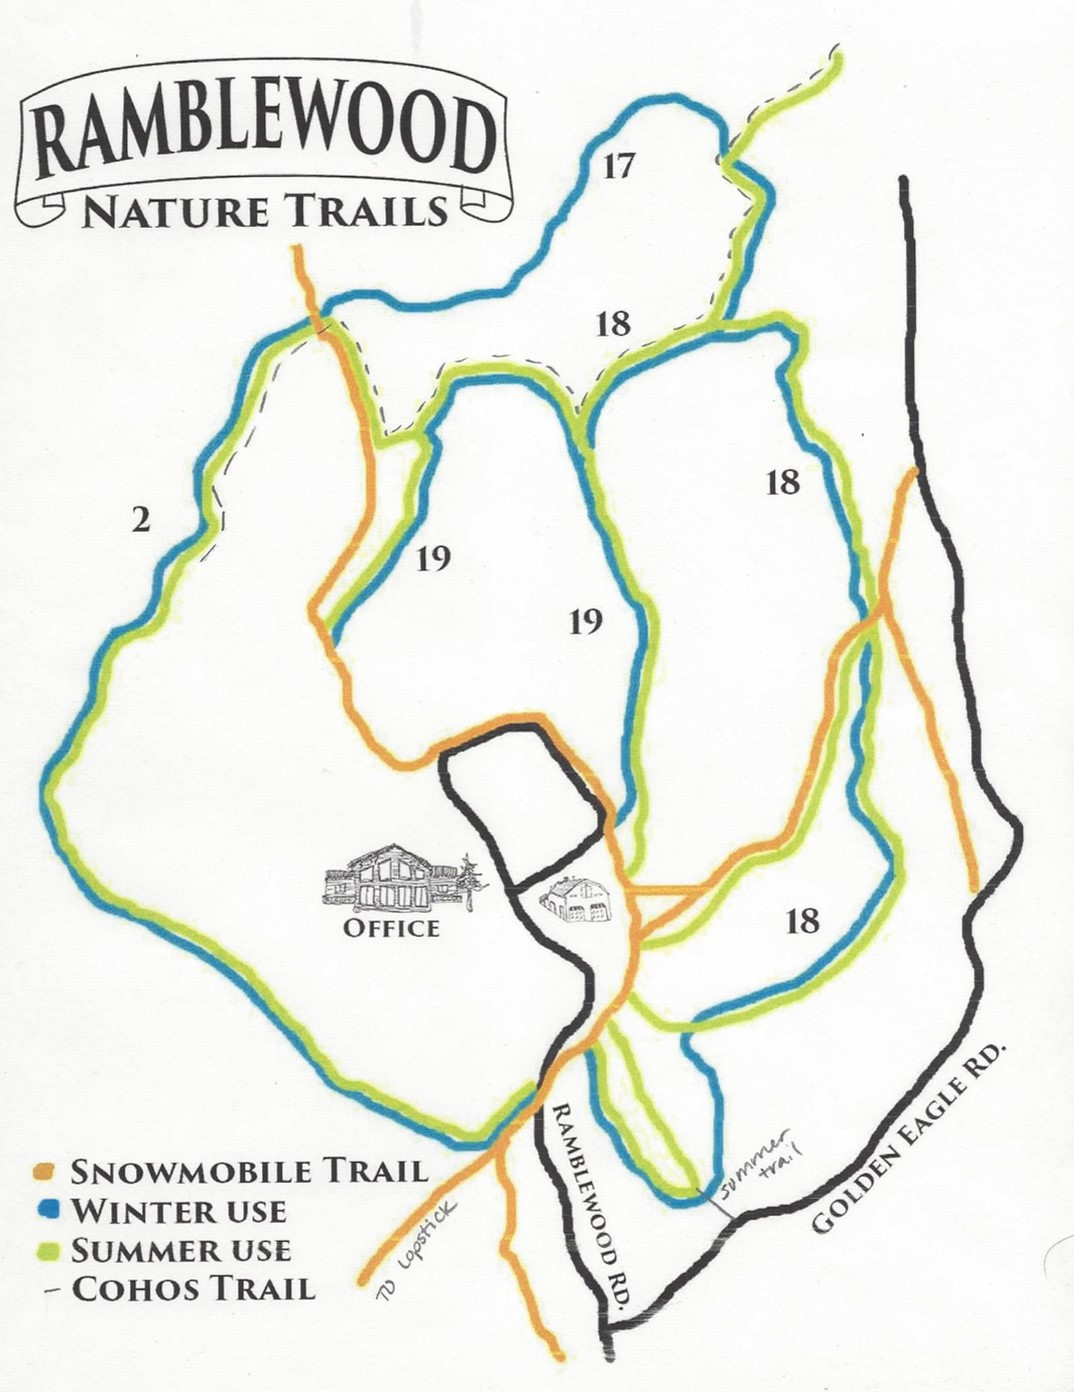 trail map 15 - Ramblewood Cabins & Campground on